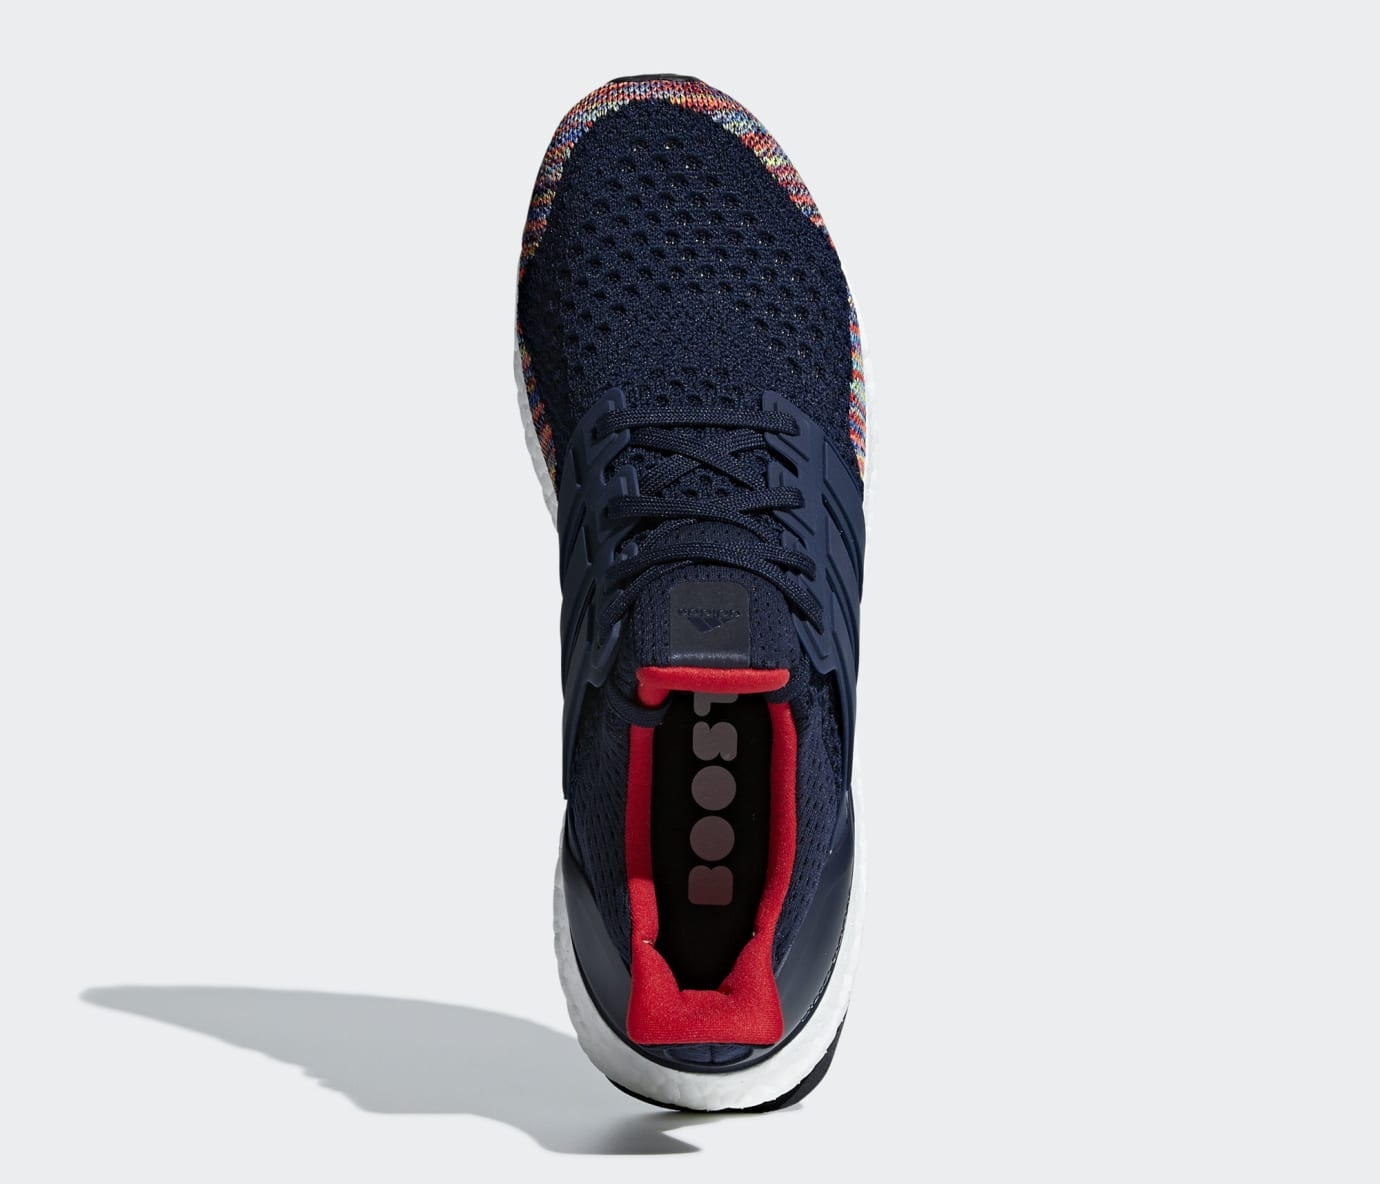 Adidas Ultra Boost 1.0 'Navy Multi' BB7801 (Top)